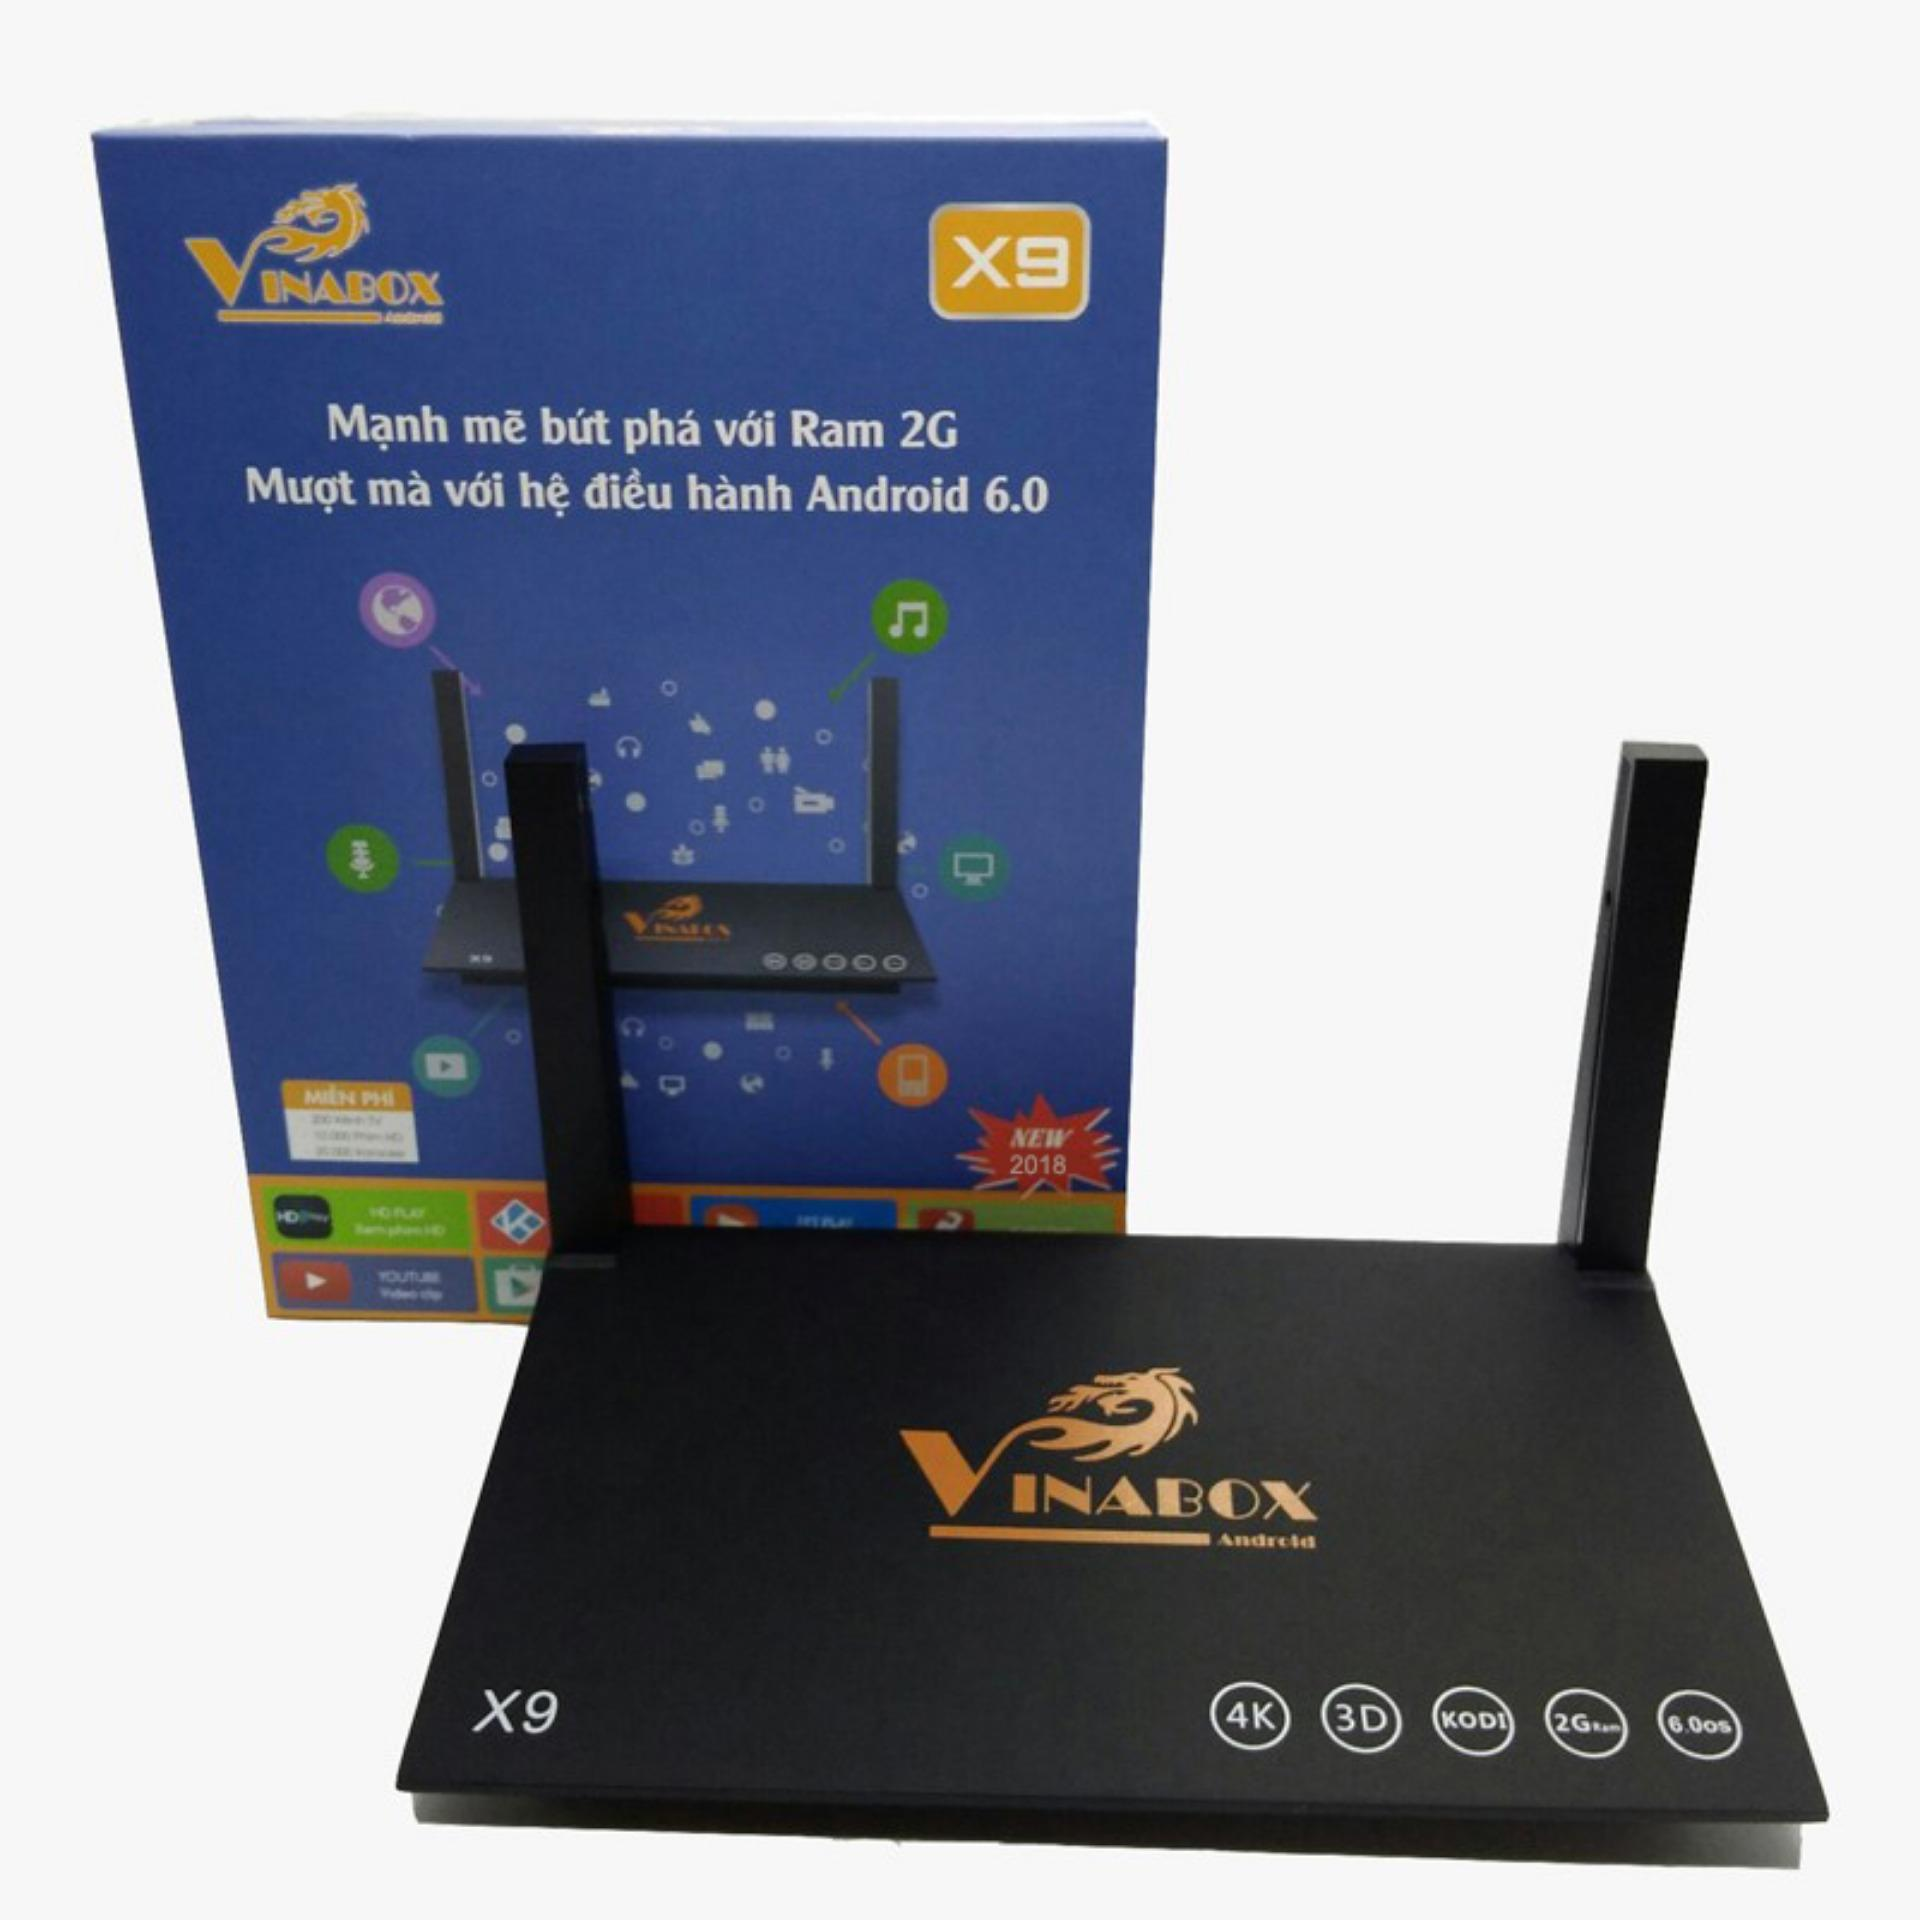 Android Tv Vinabox X9 2018 Ram 2Gb Android 6 Vinabox Chiết Khấu 40